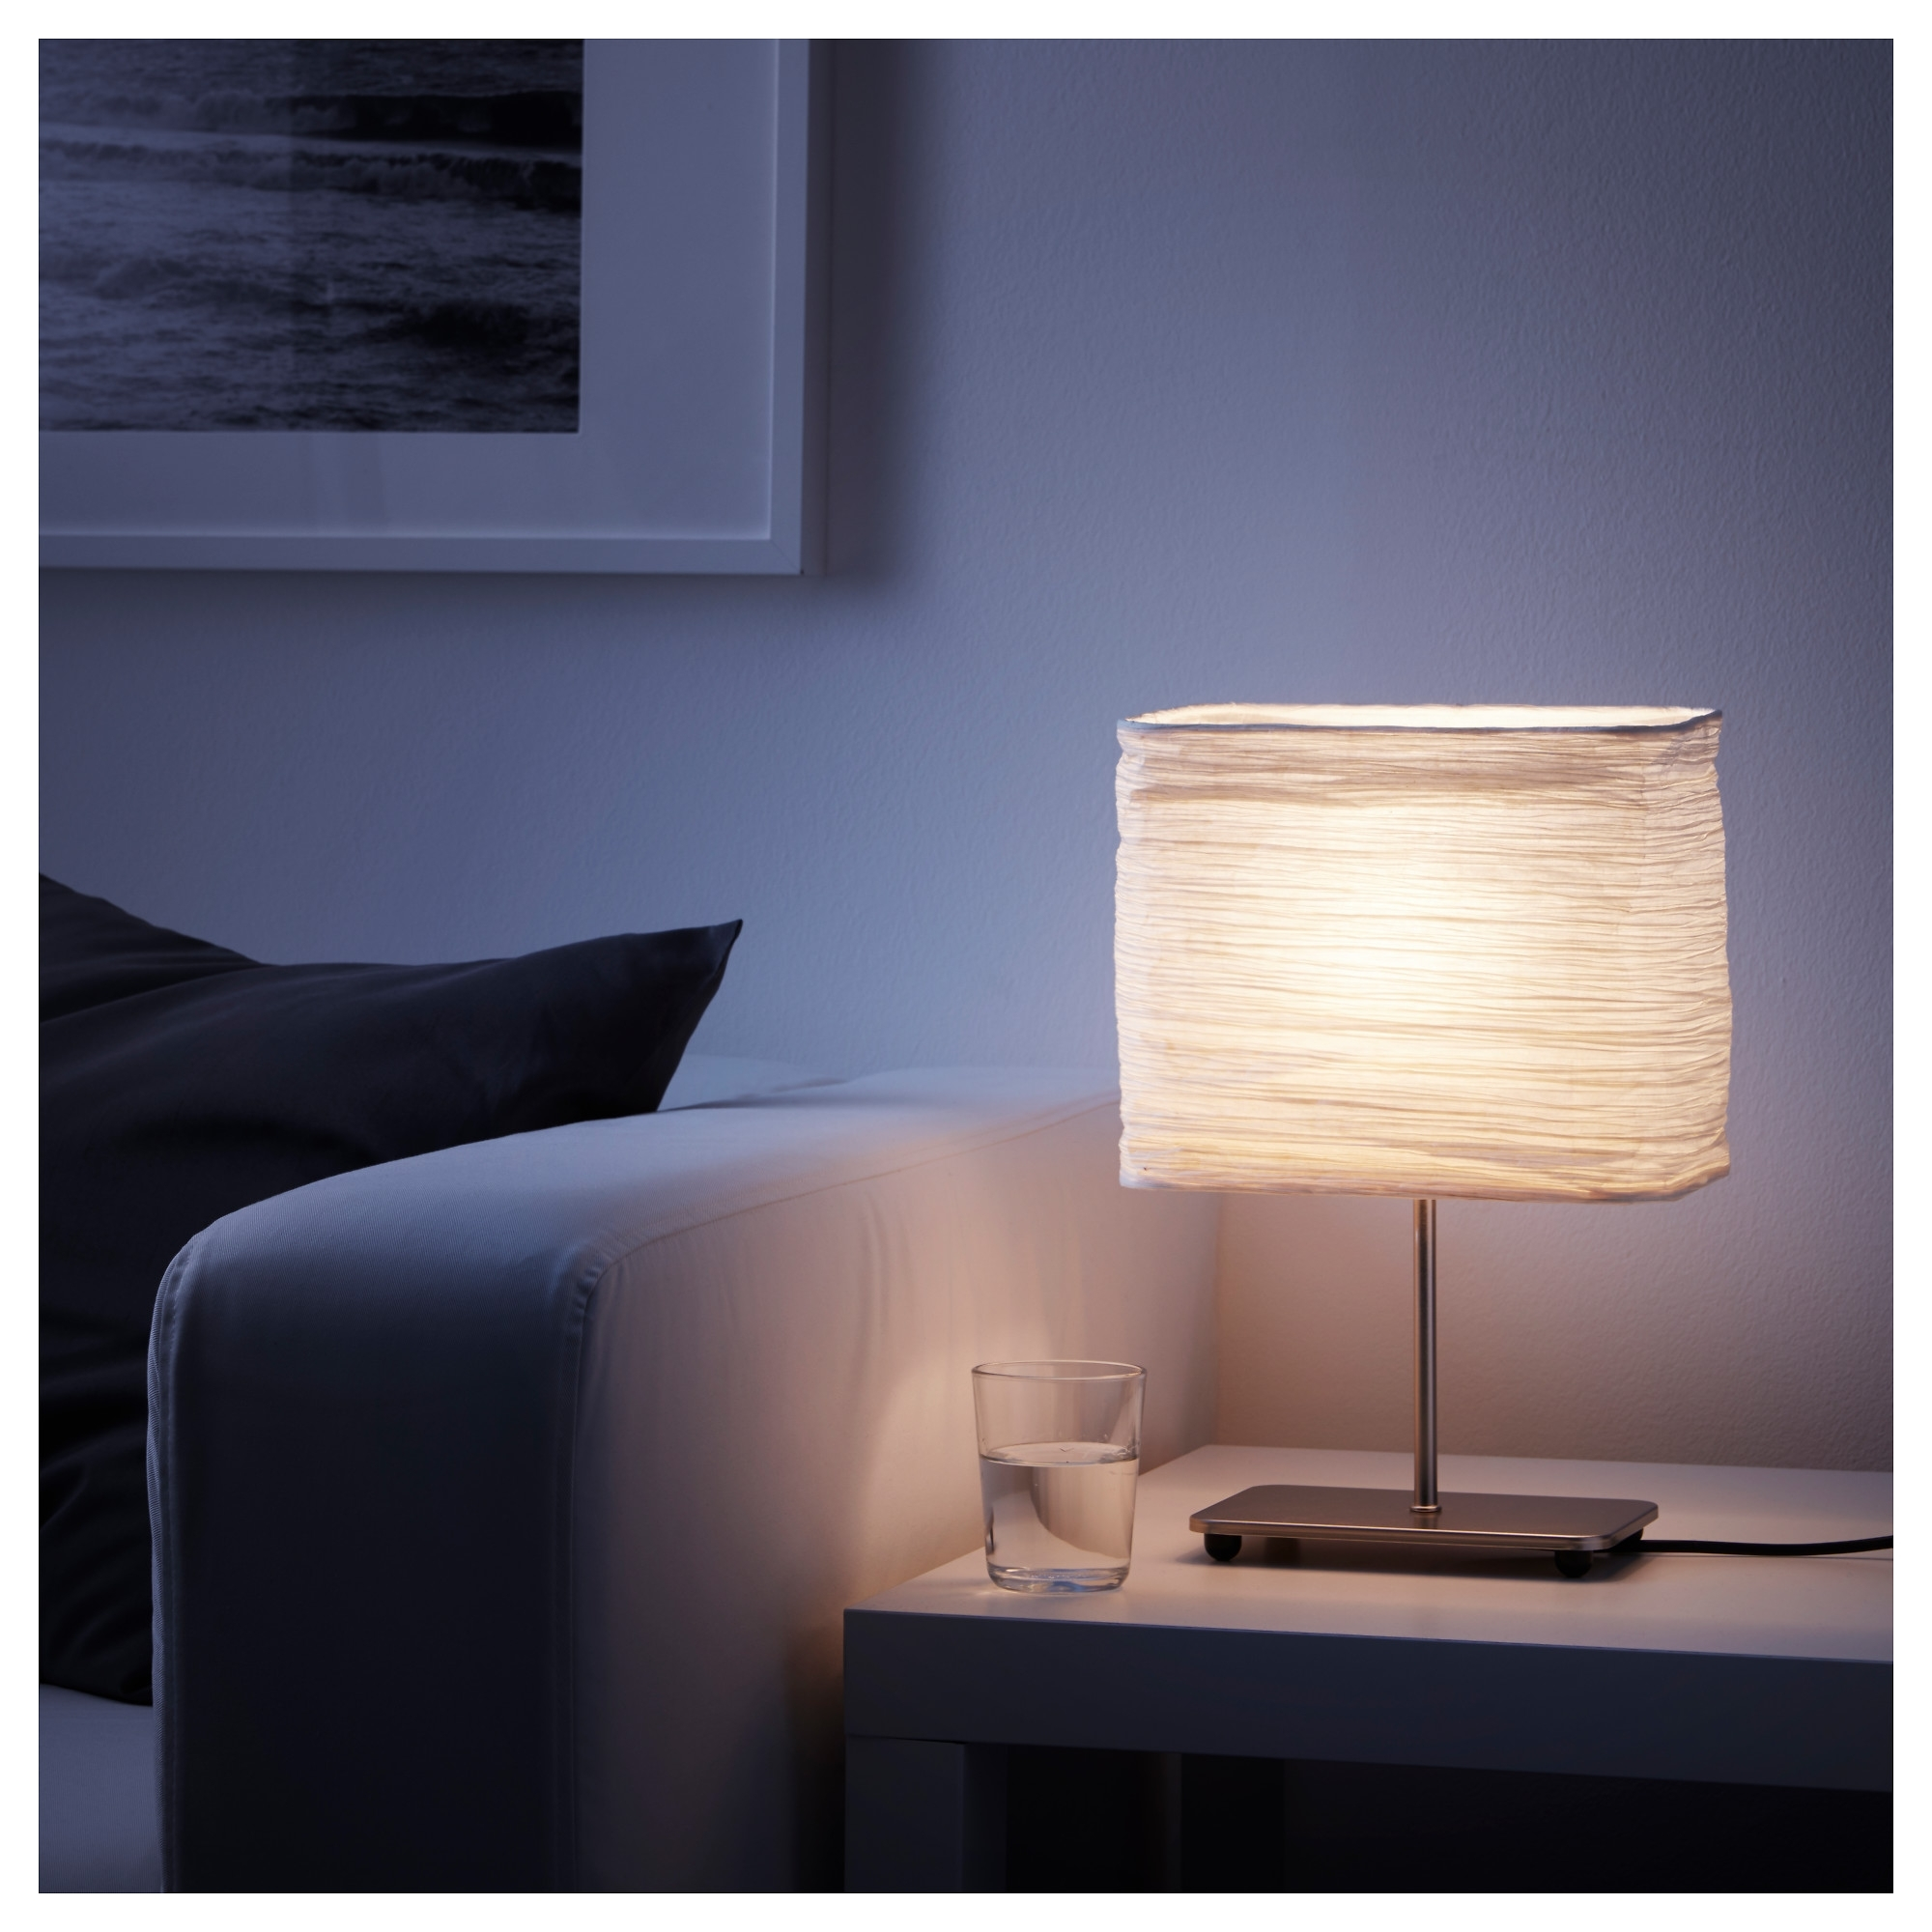 Nightstand: Buy Table Lamp Grey Bedside Lamps Bedroom Amazon Within Living Room Table Lamps At Ikea (#11 of 15)